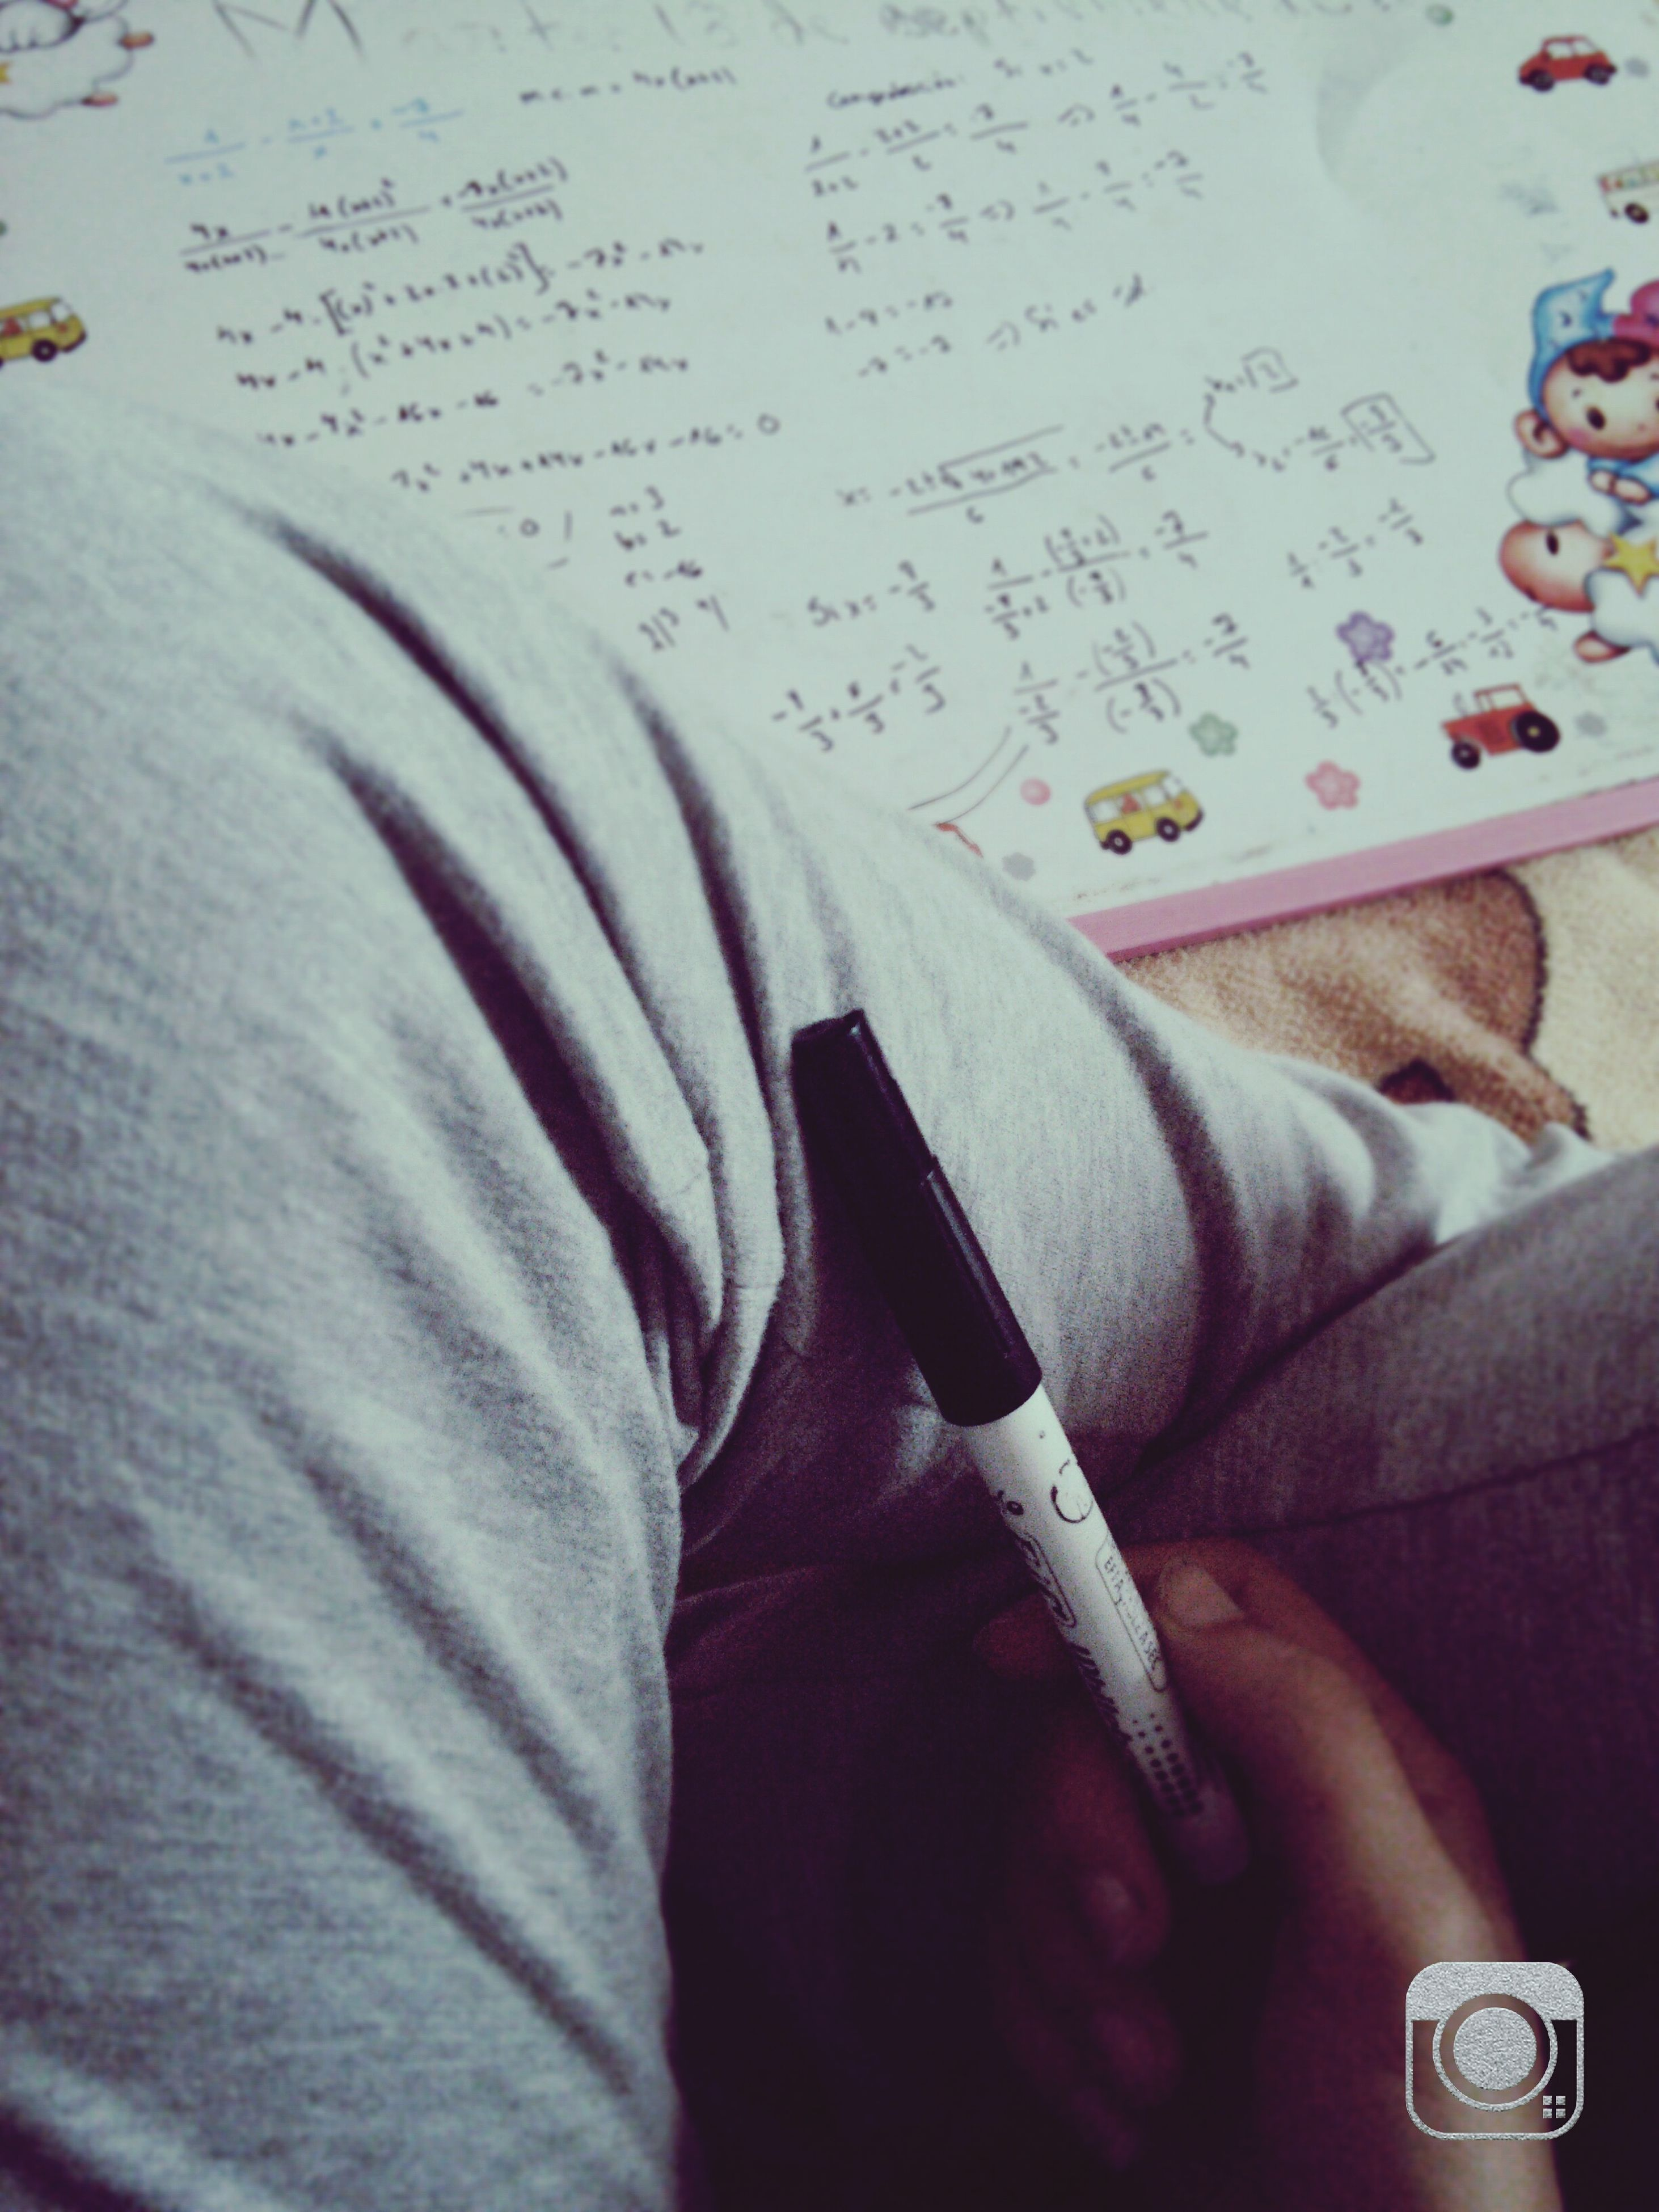 indoors, communication, book, text, close-up, education, bed, western script, paper, high angle view, person, part of, pen, table, technology, wireless technology, writing